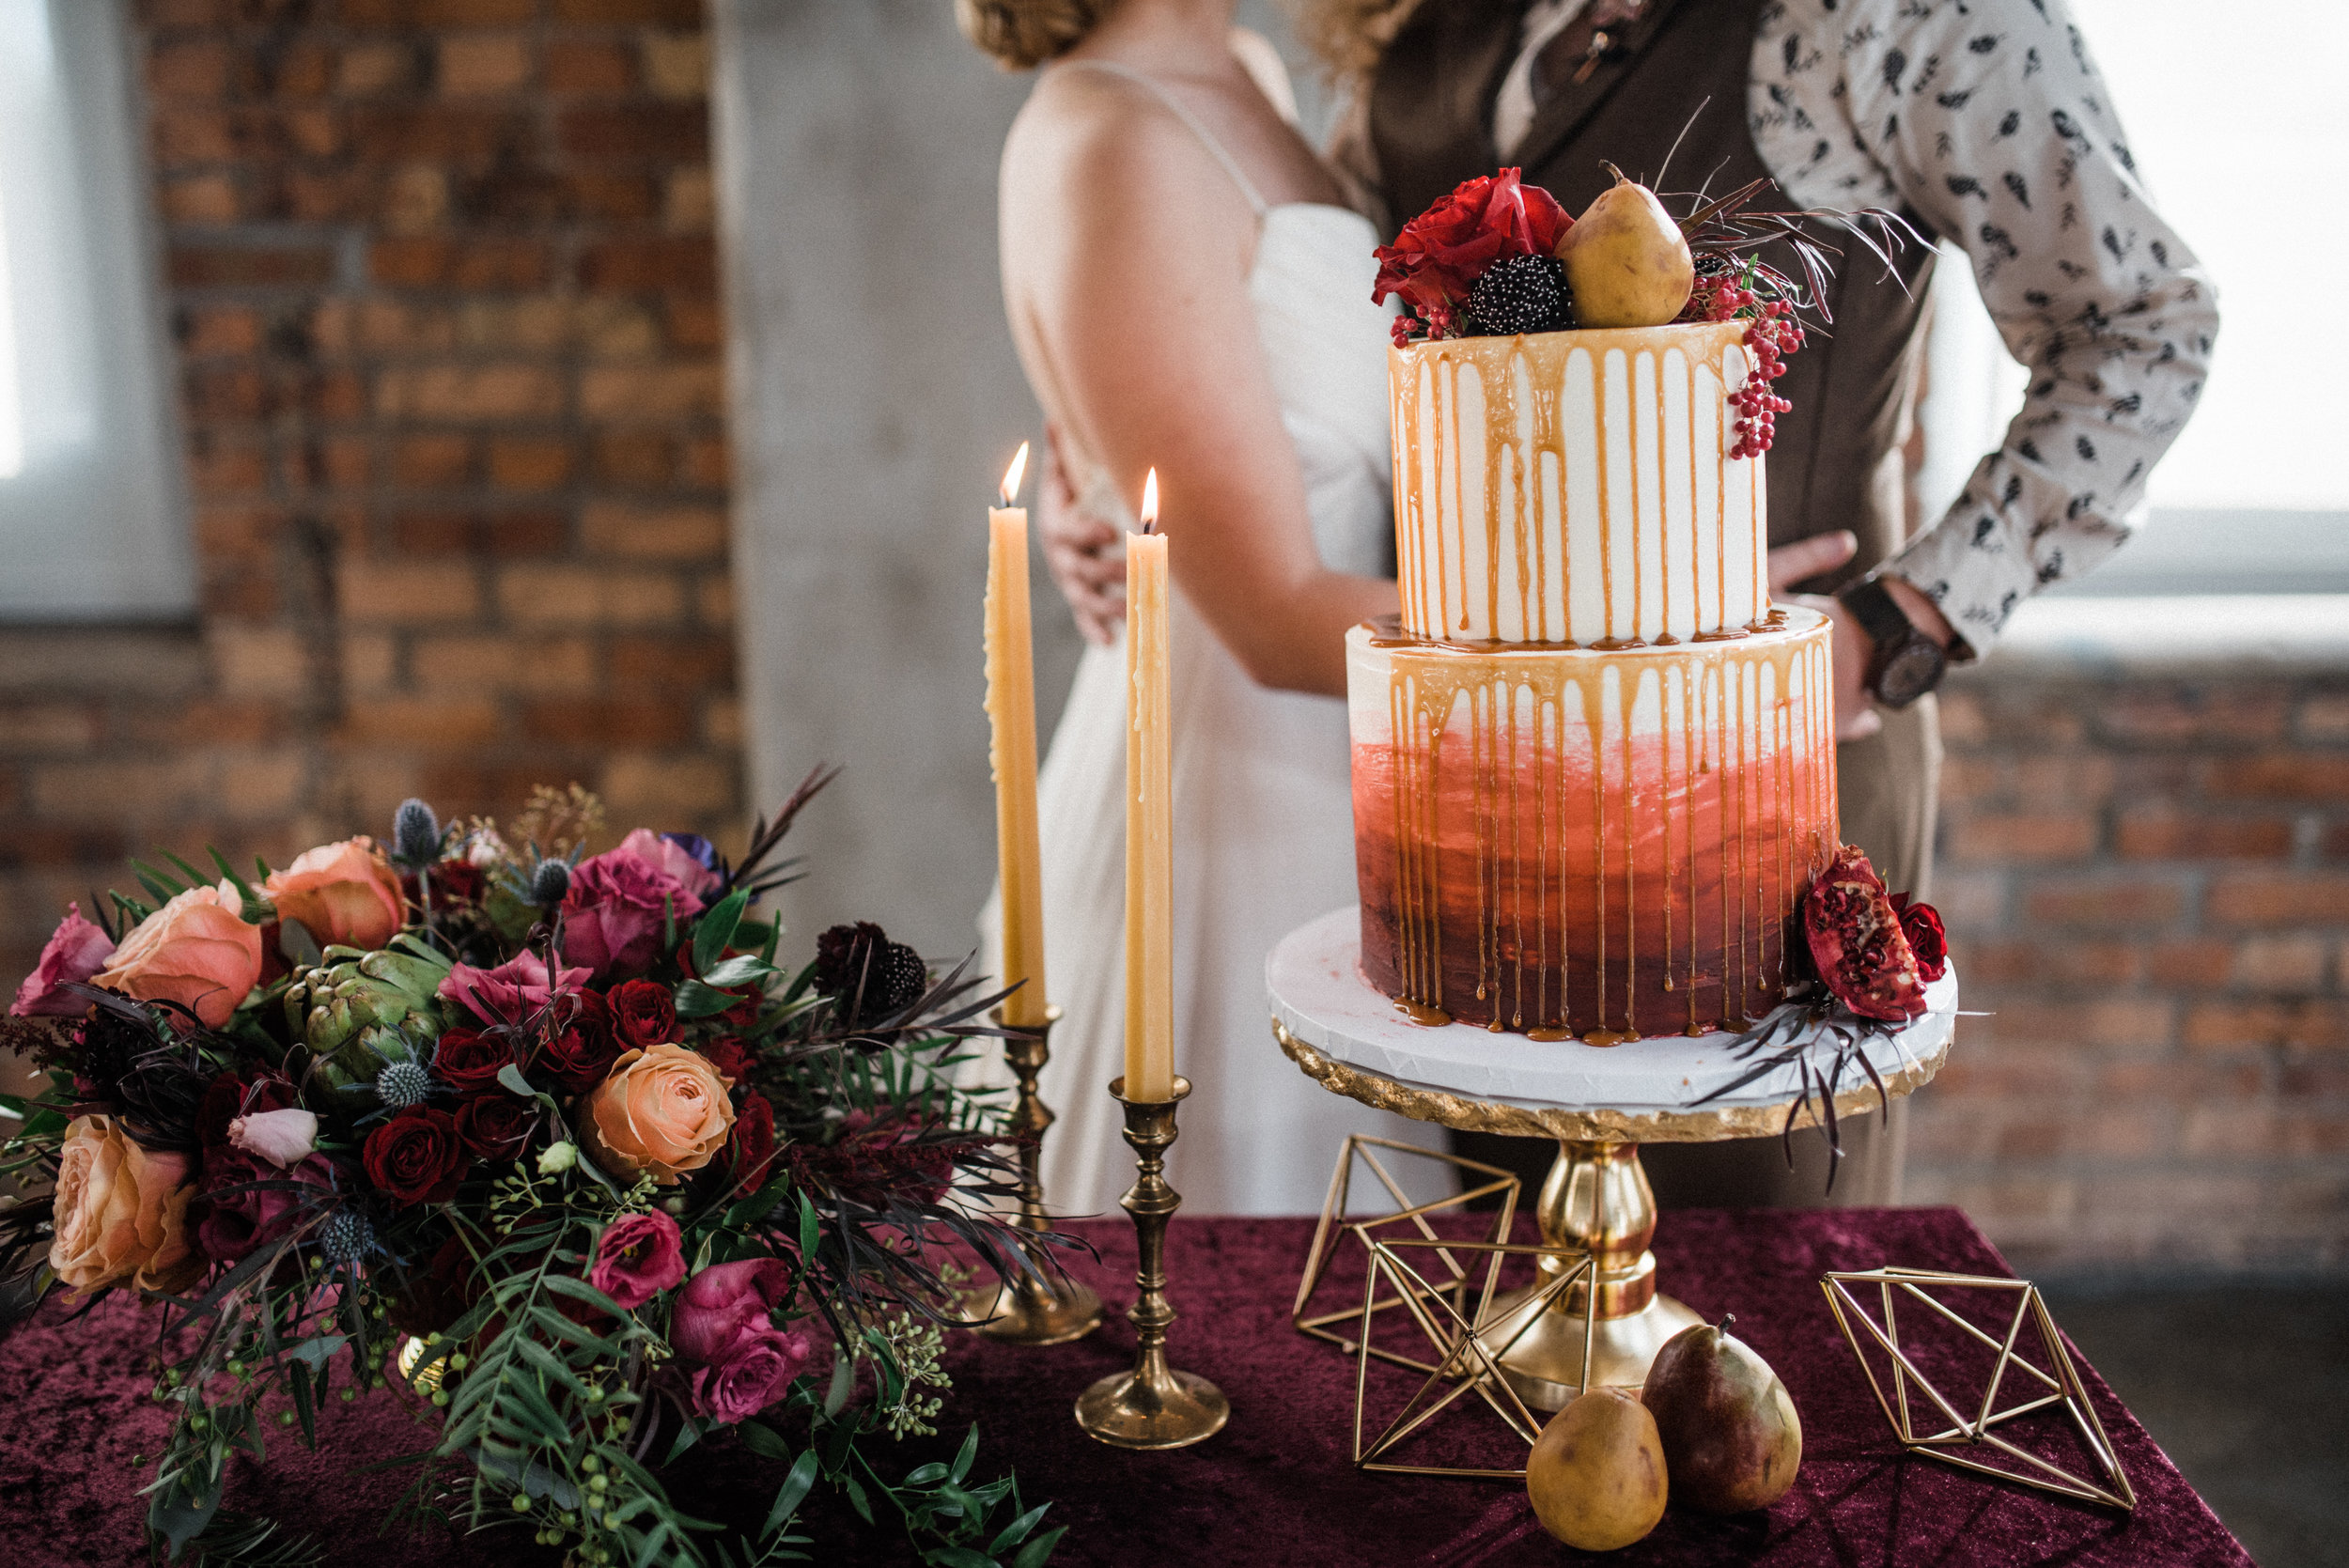 Flower arrangements by The Flower Man, decor from Something Old Dayton, planned and styled by Perry Rose Media, and photographed by Chelsea Hall. Wedding dress from Celia Grace. Shot at Steam Plant in Dayton.